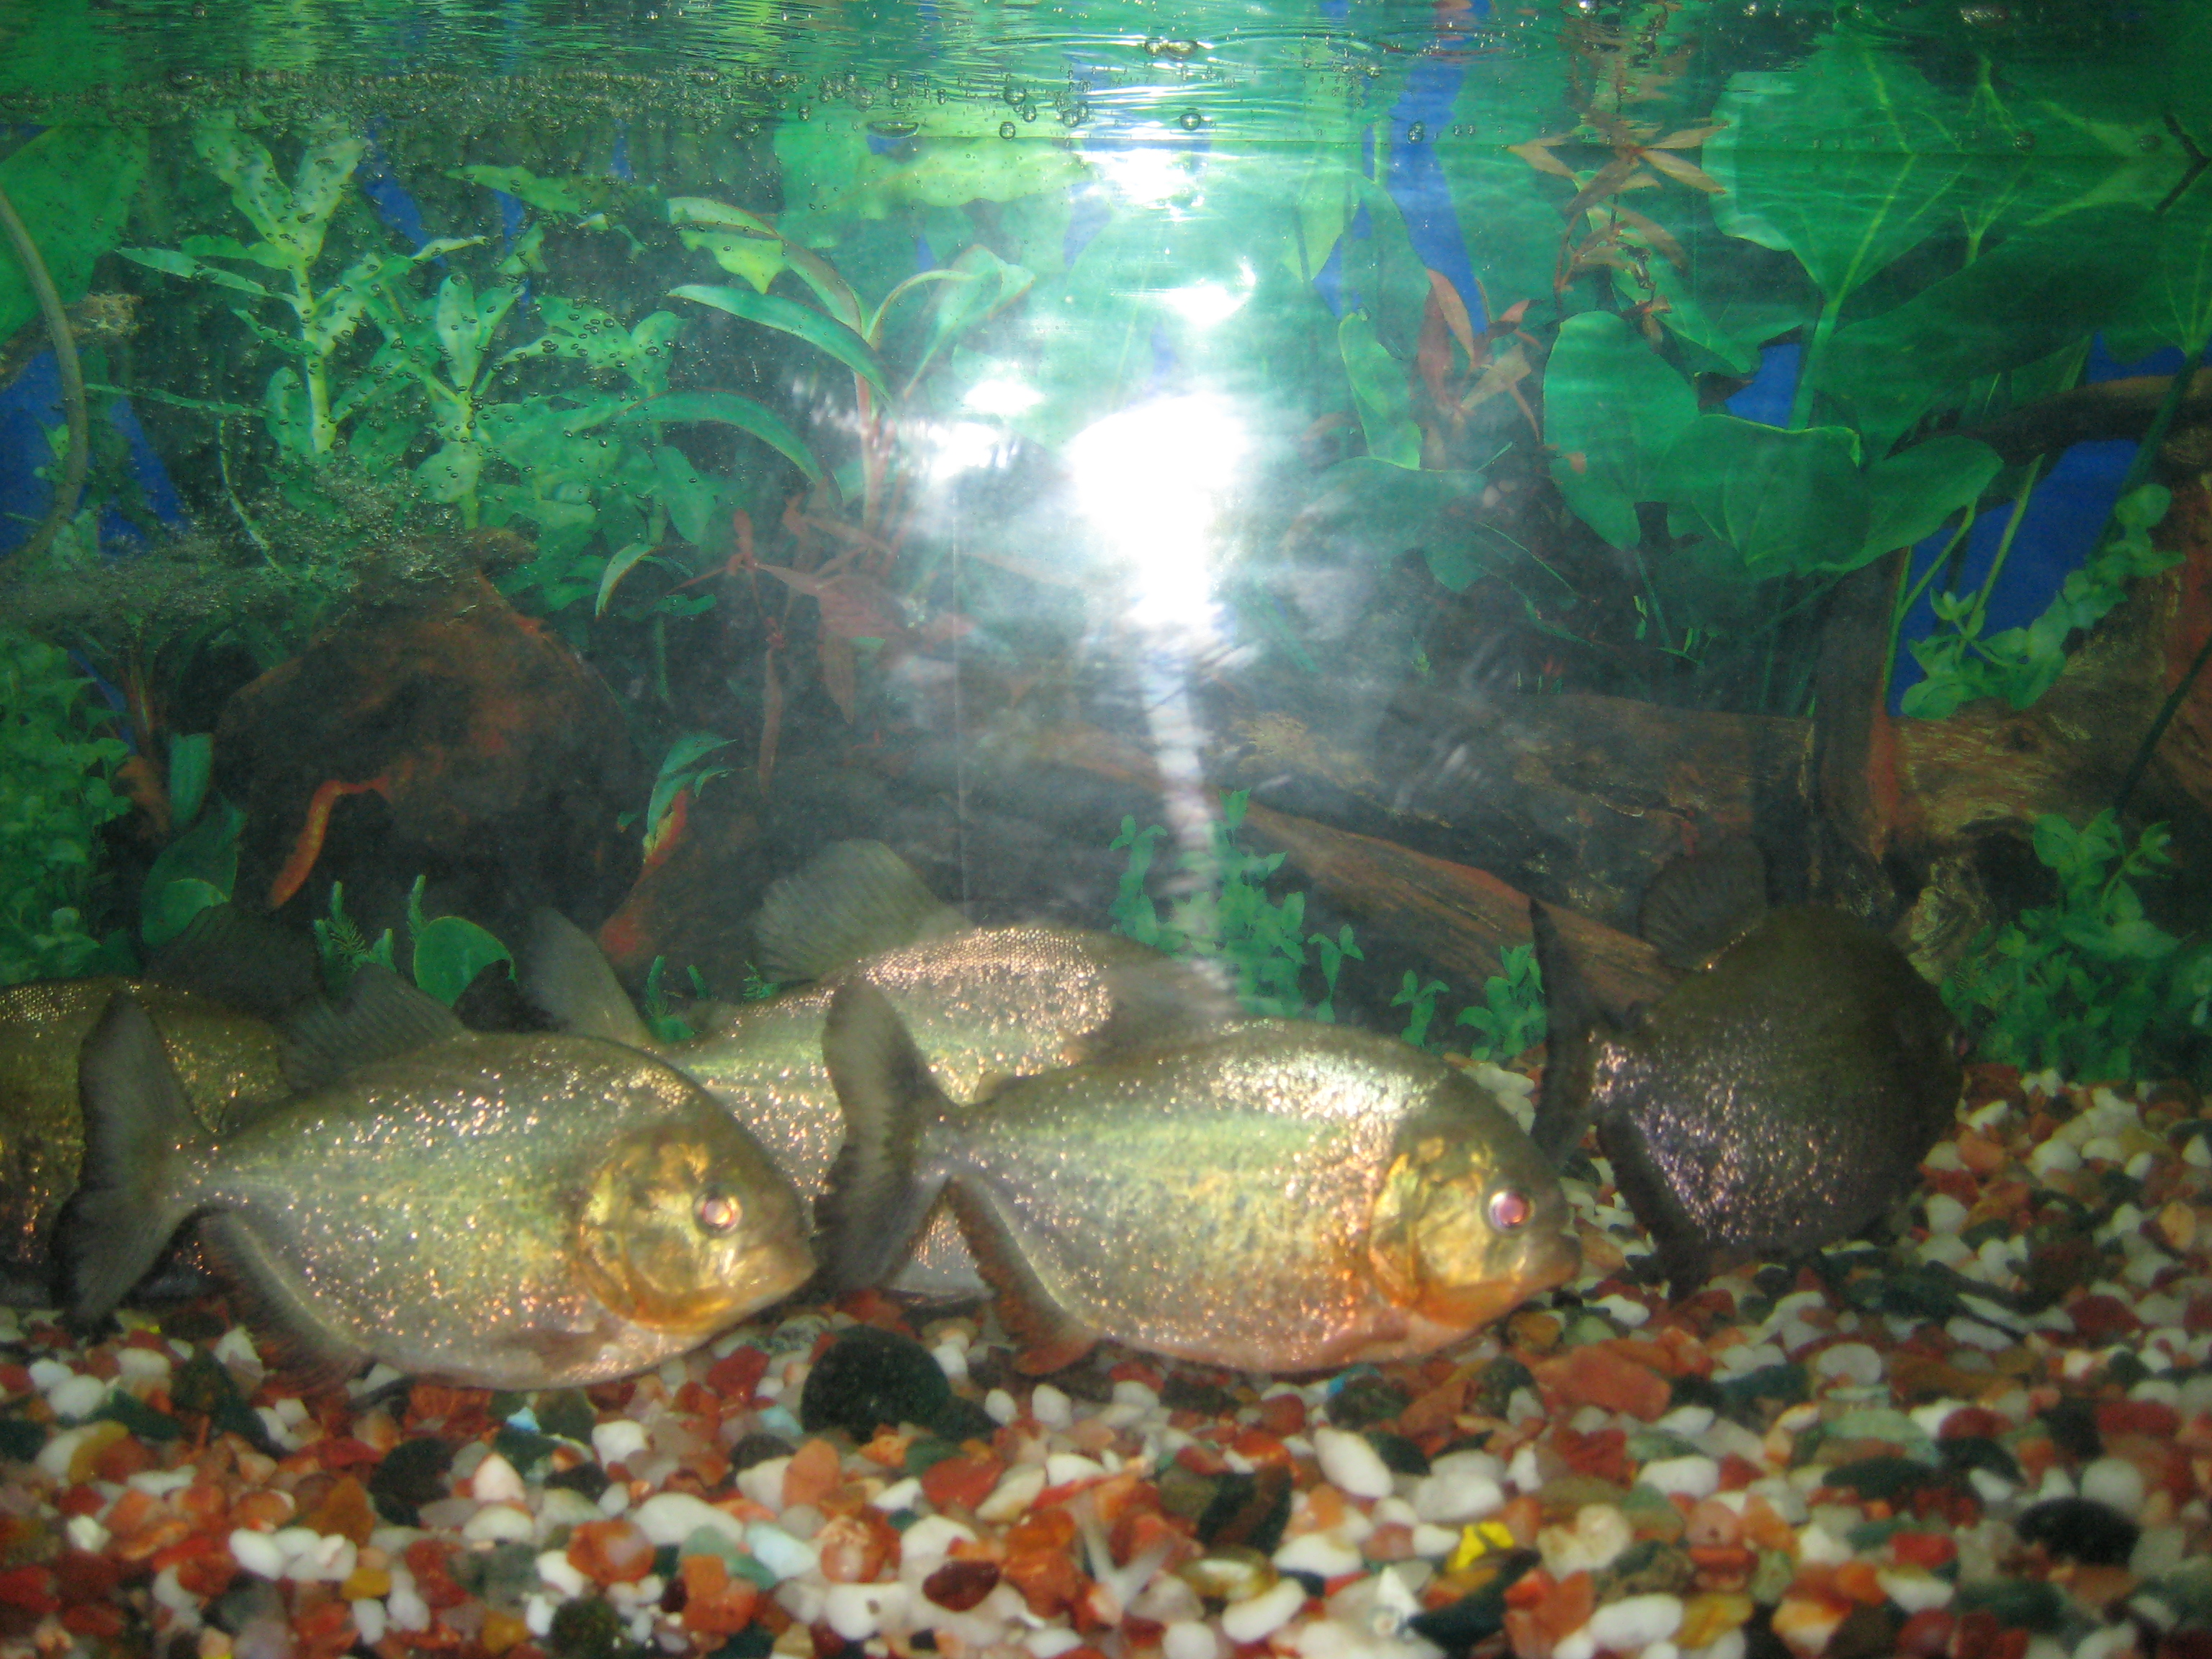 Facts About Red Bellied Piranhas Red Belly Piranhas or Pacu